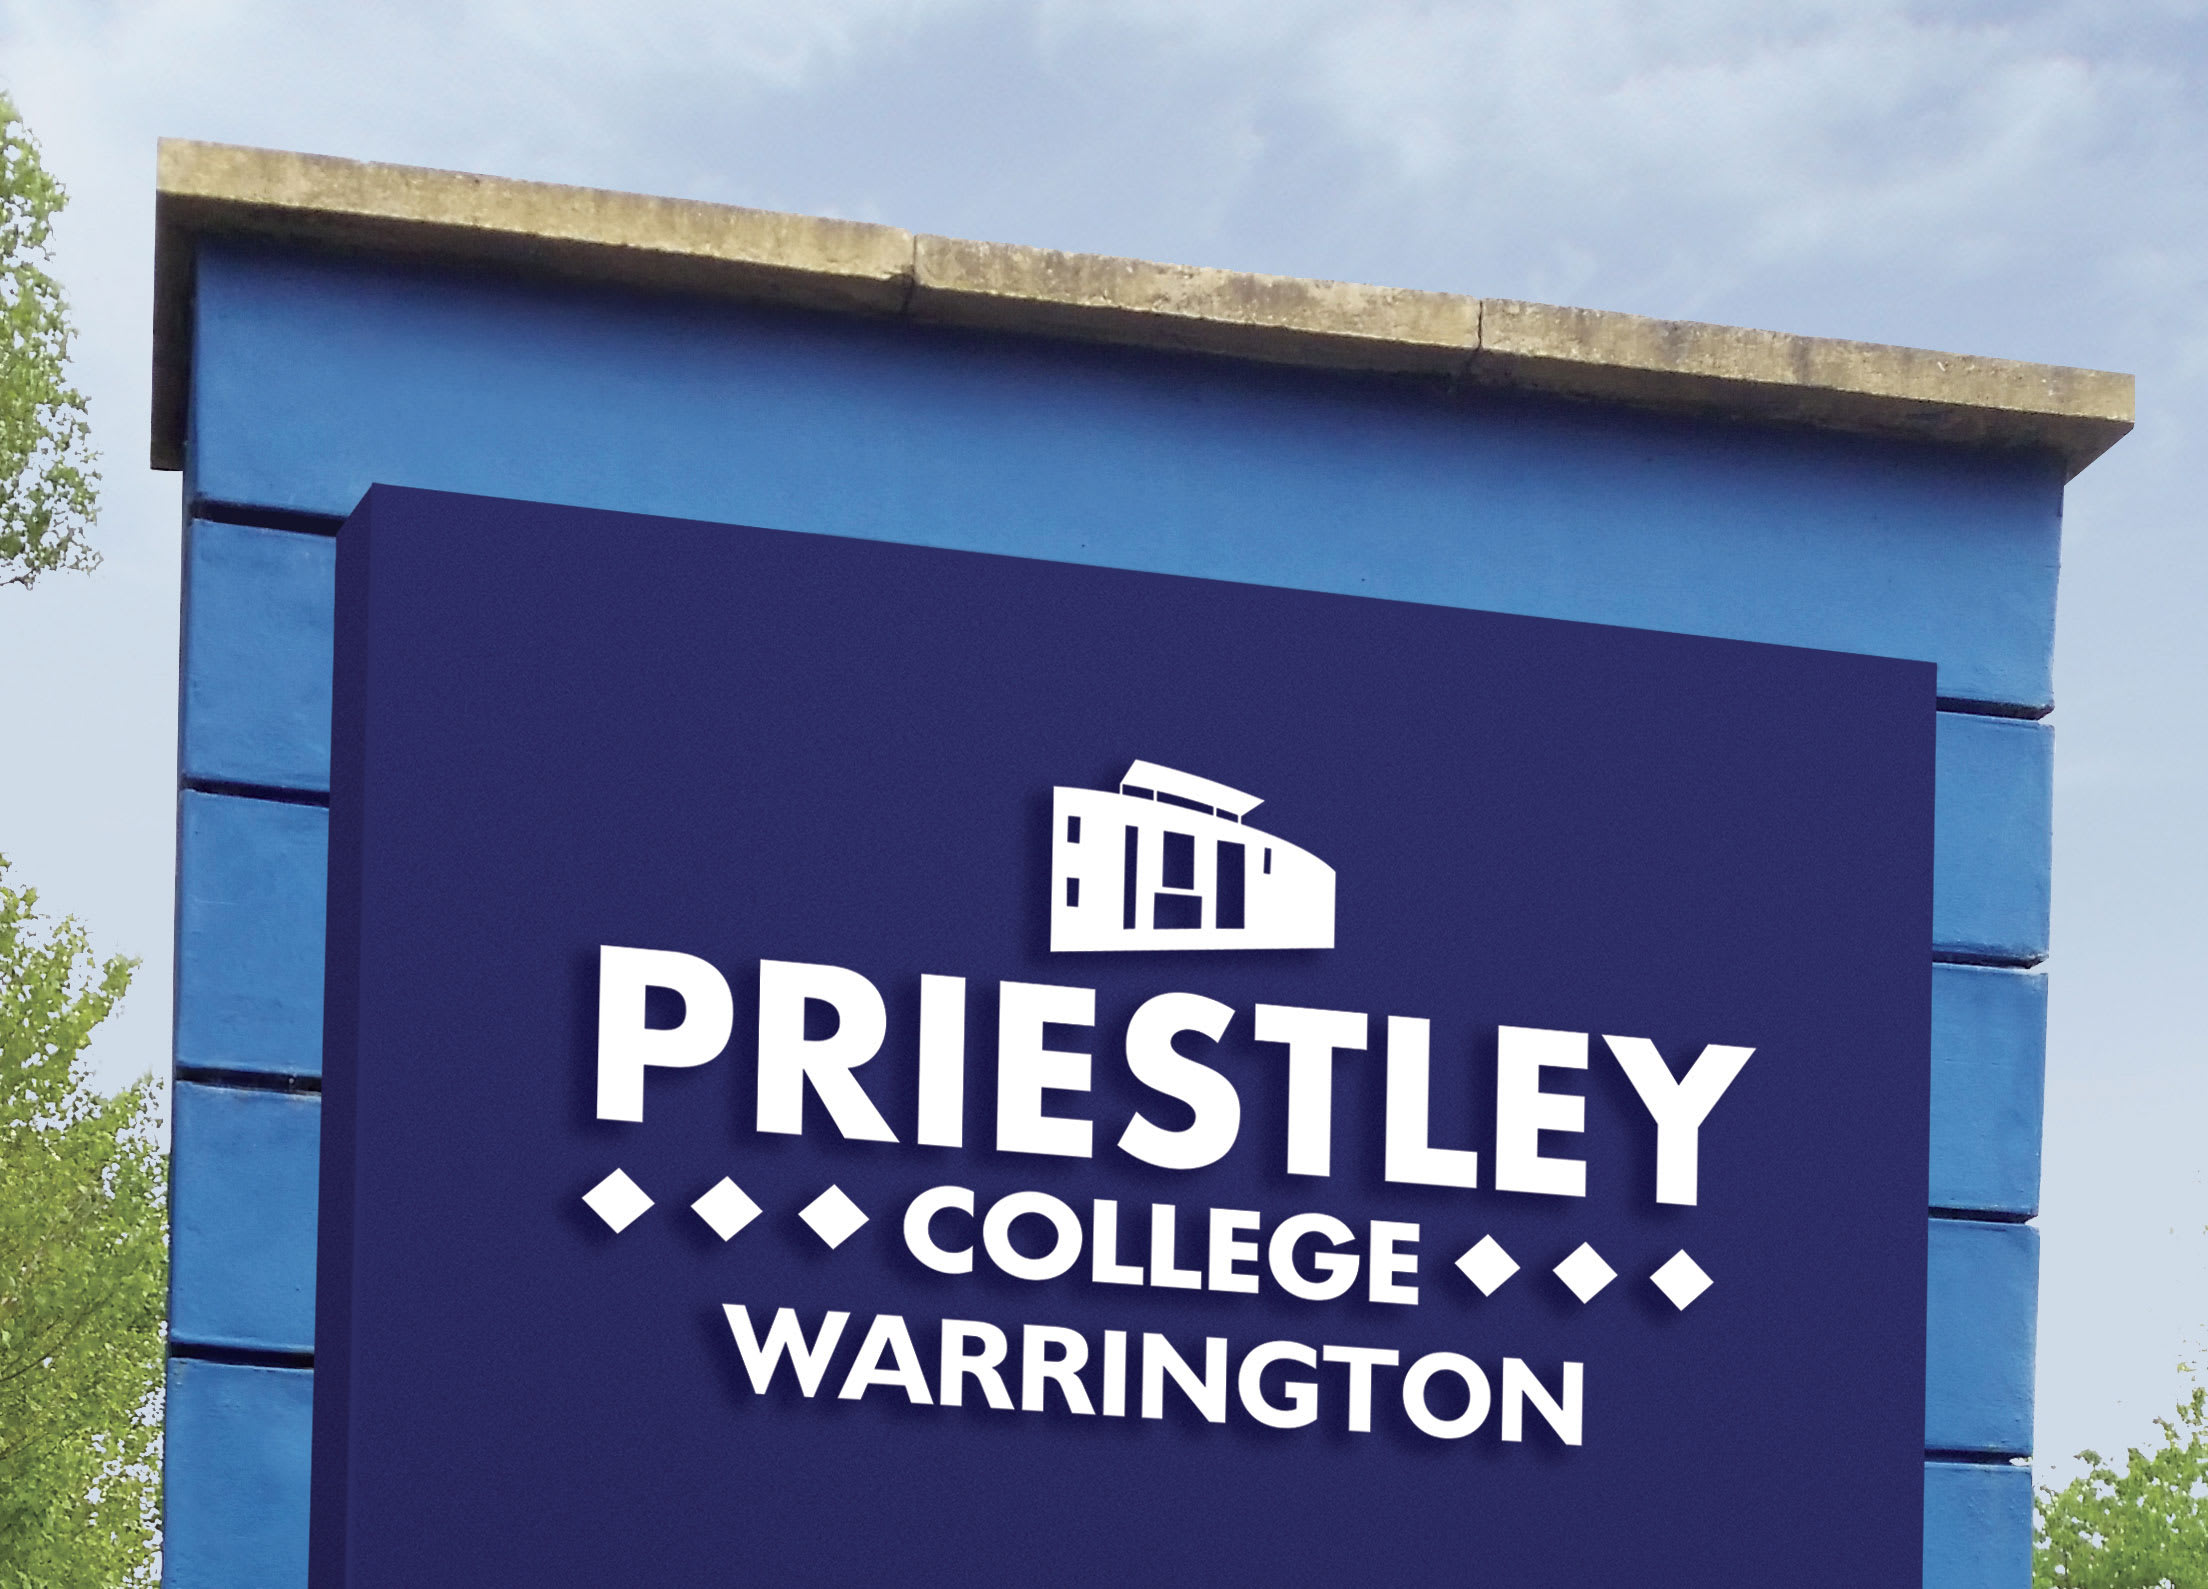 Priestley College - Signage